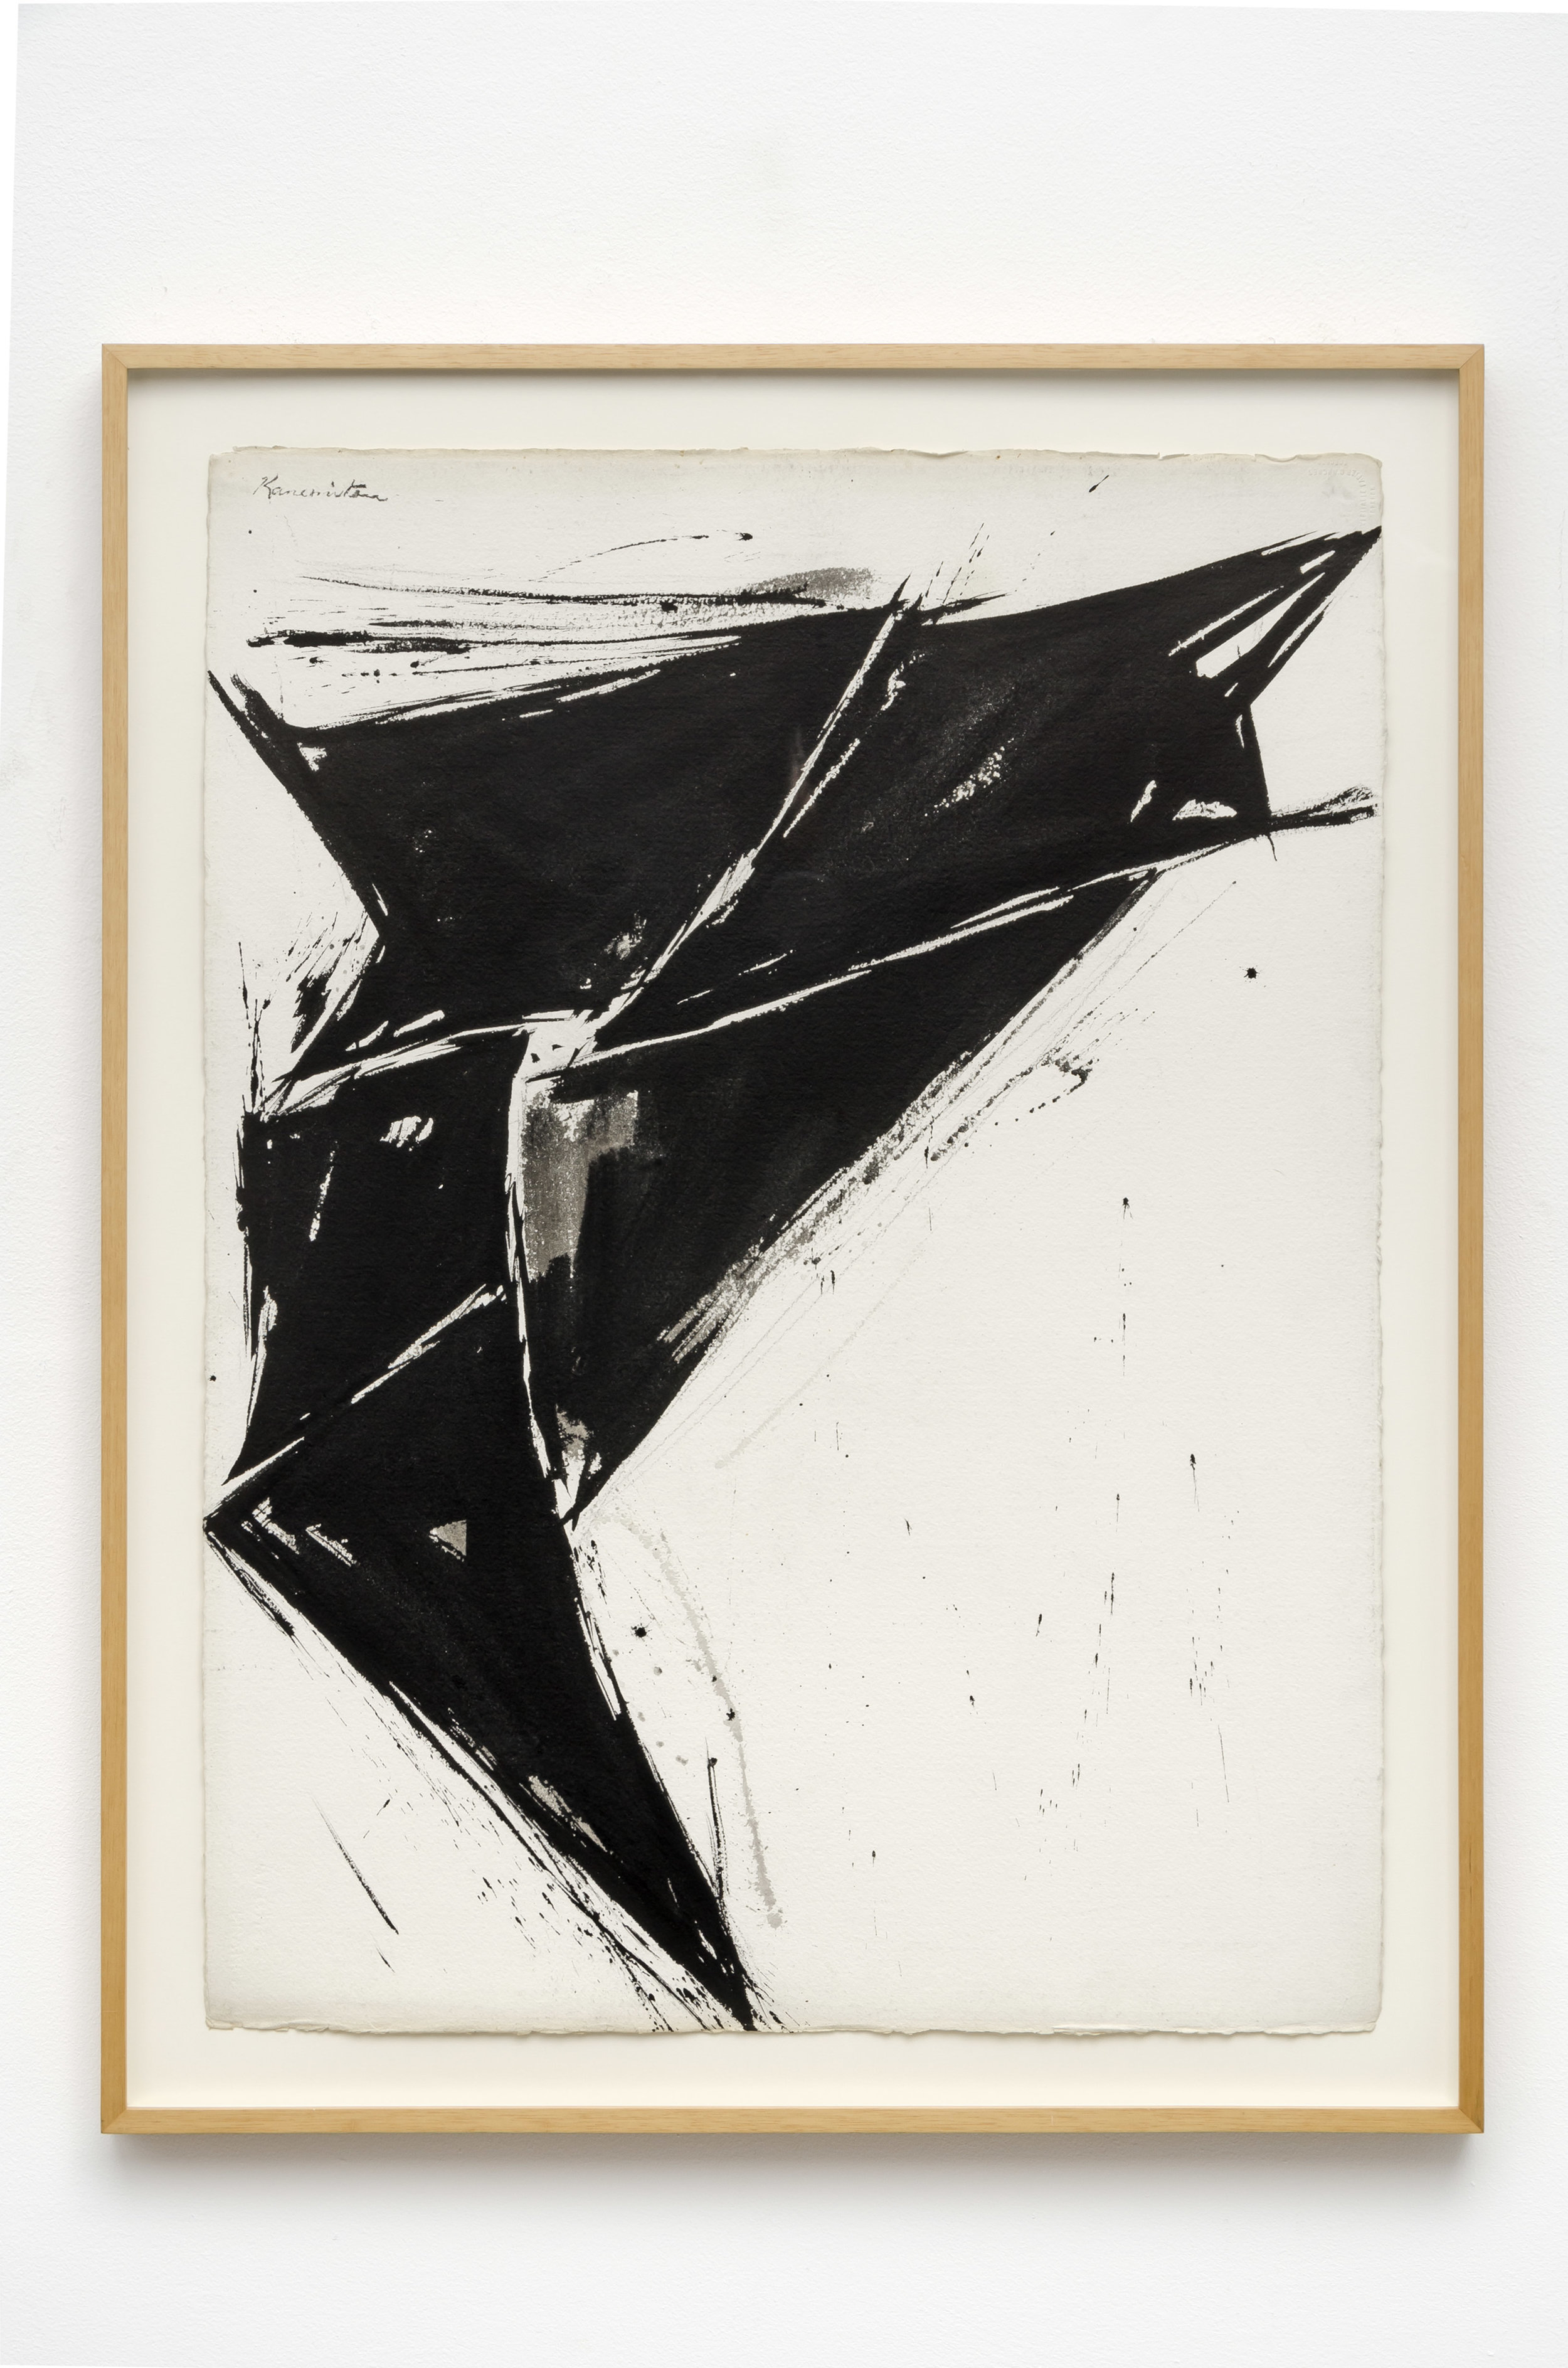 #10   1961  sumi ink on paper  30.5 x 22.5 inches, 77.5 x 57.1 centimeters